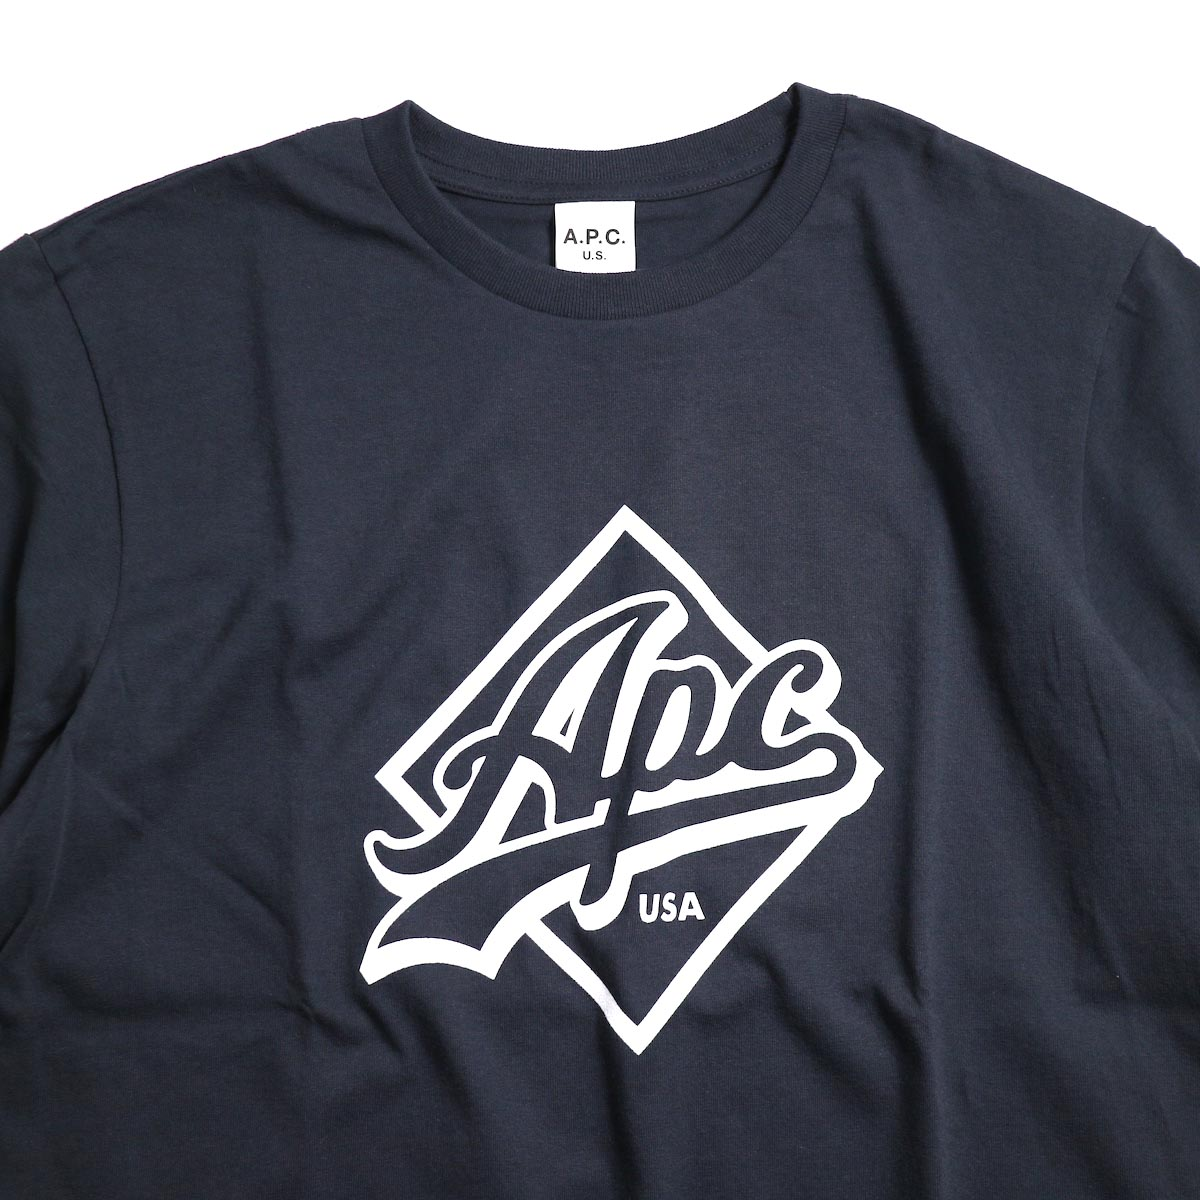 A.P.C. / Tremaine Tシャツ プリント